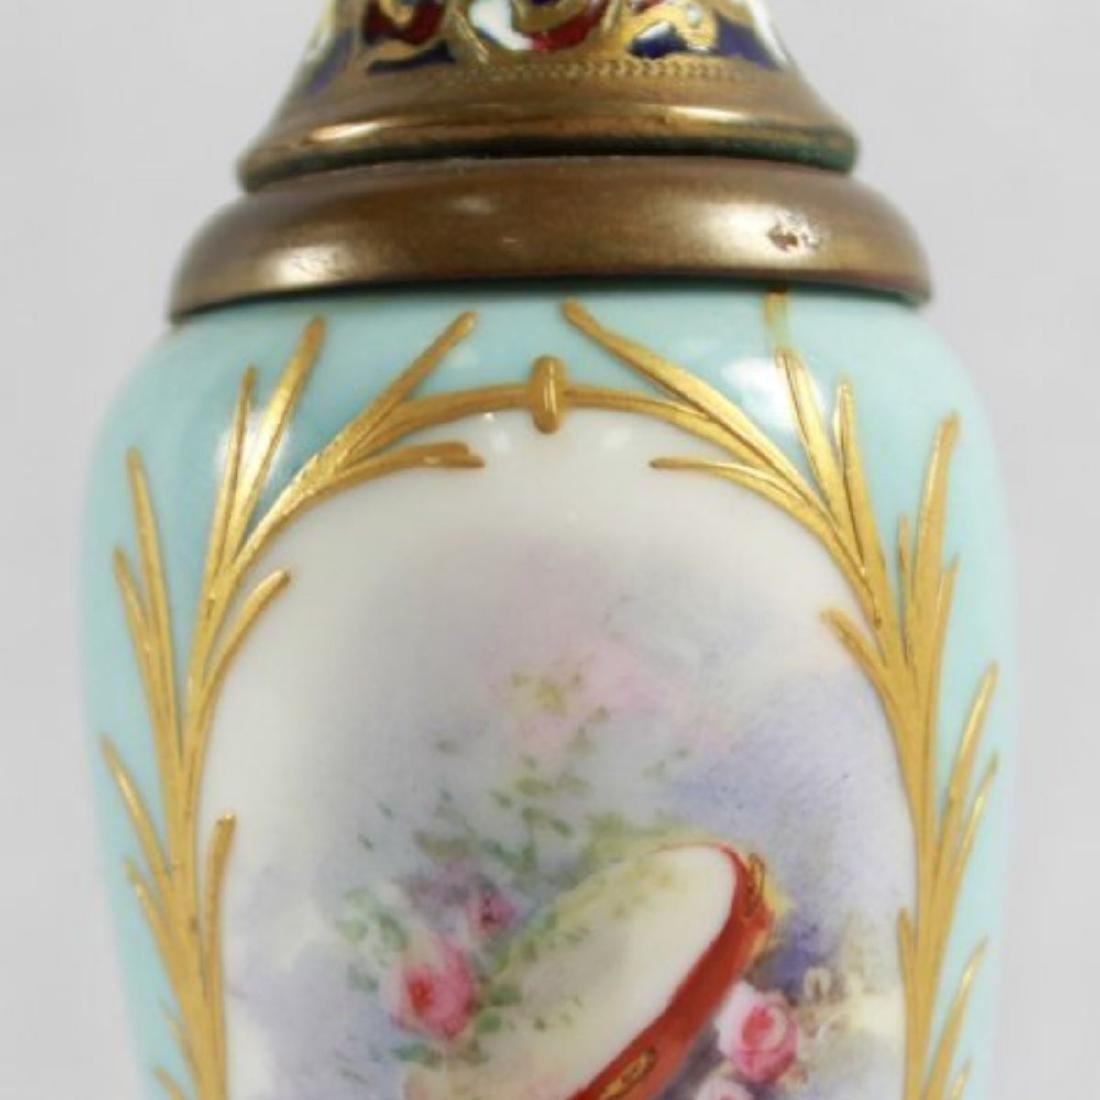 19TH C. CHAMPLEVE CABINET VASE WITH BASE - 6